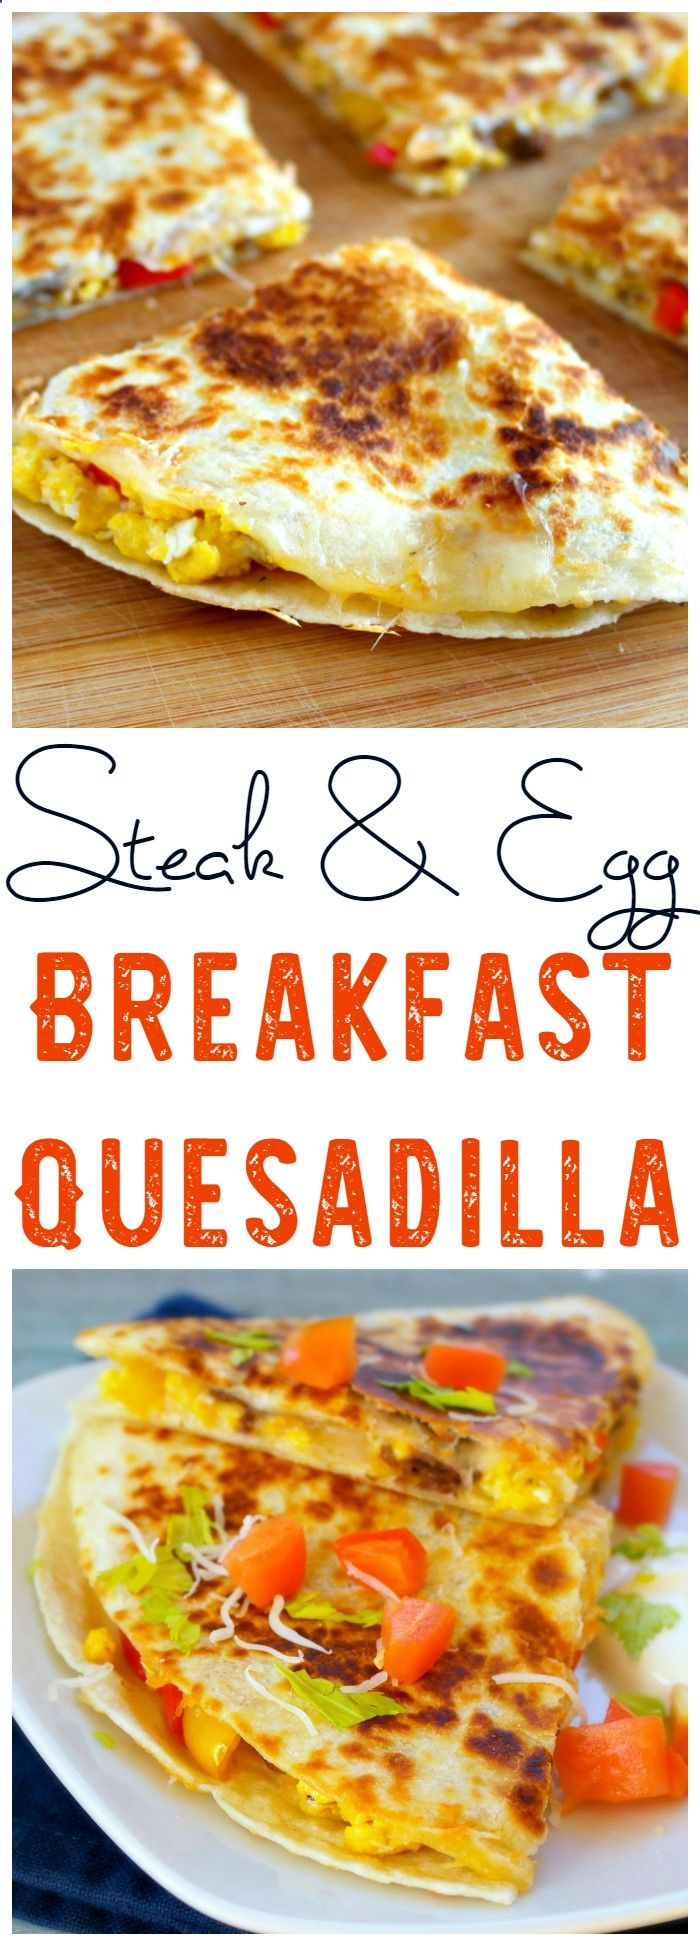 This Steak  Egg Breakfast Quesadilla makes a great breakfast, but is also perfect for dinner!